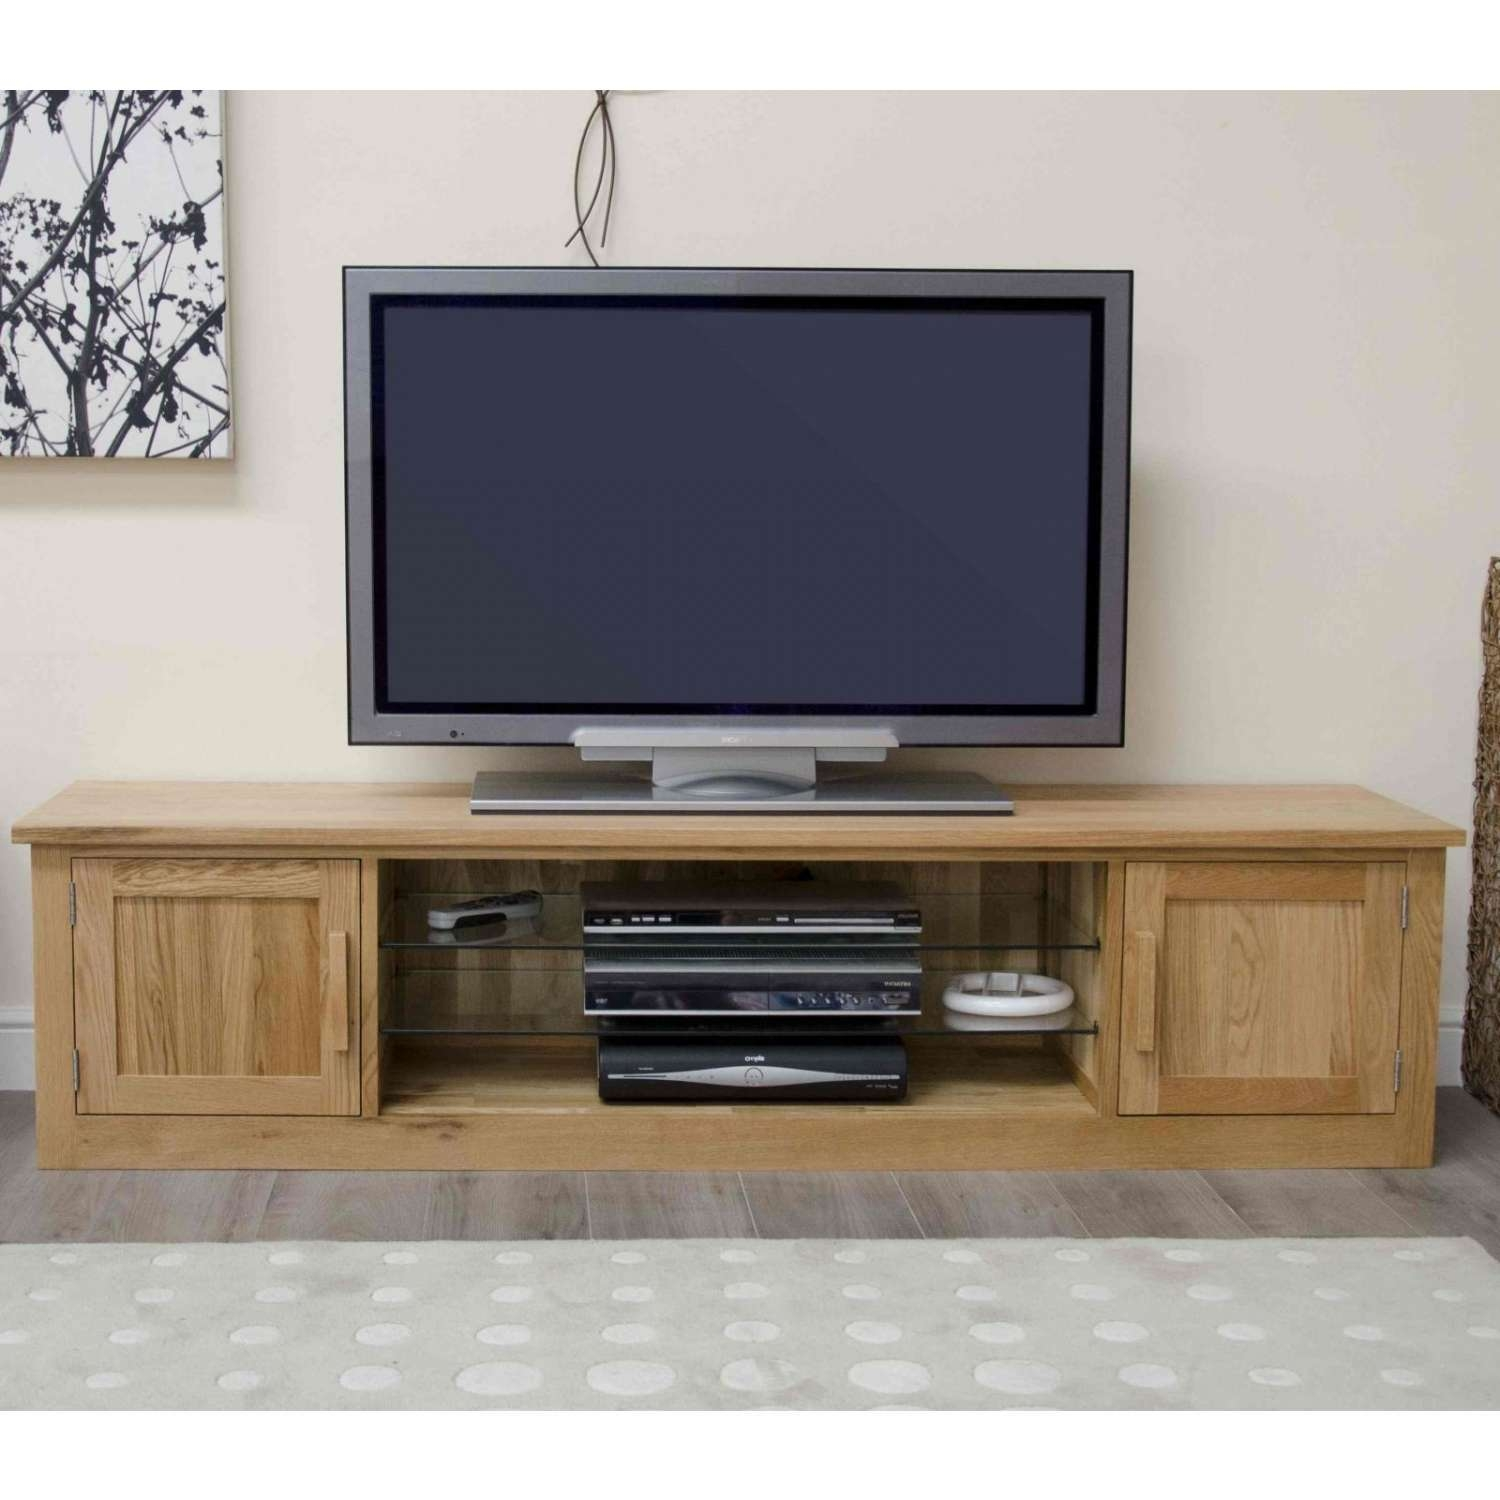 Arden Solid Oak Living Room Furniture Large Widescreen Tv Cabinet Within Wide Screen Tv Stands (View 5 of 15)